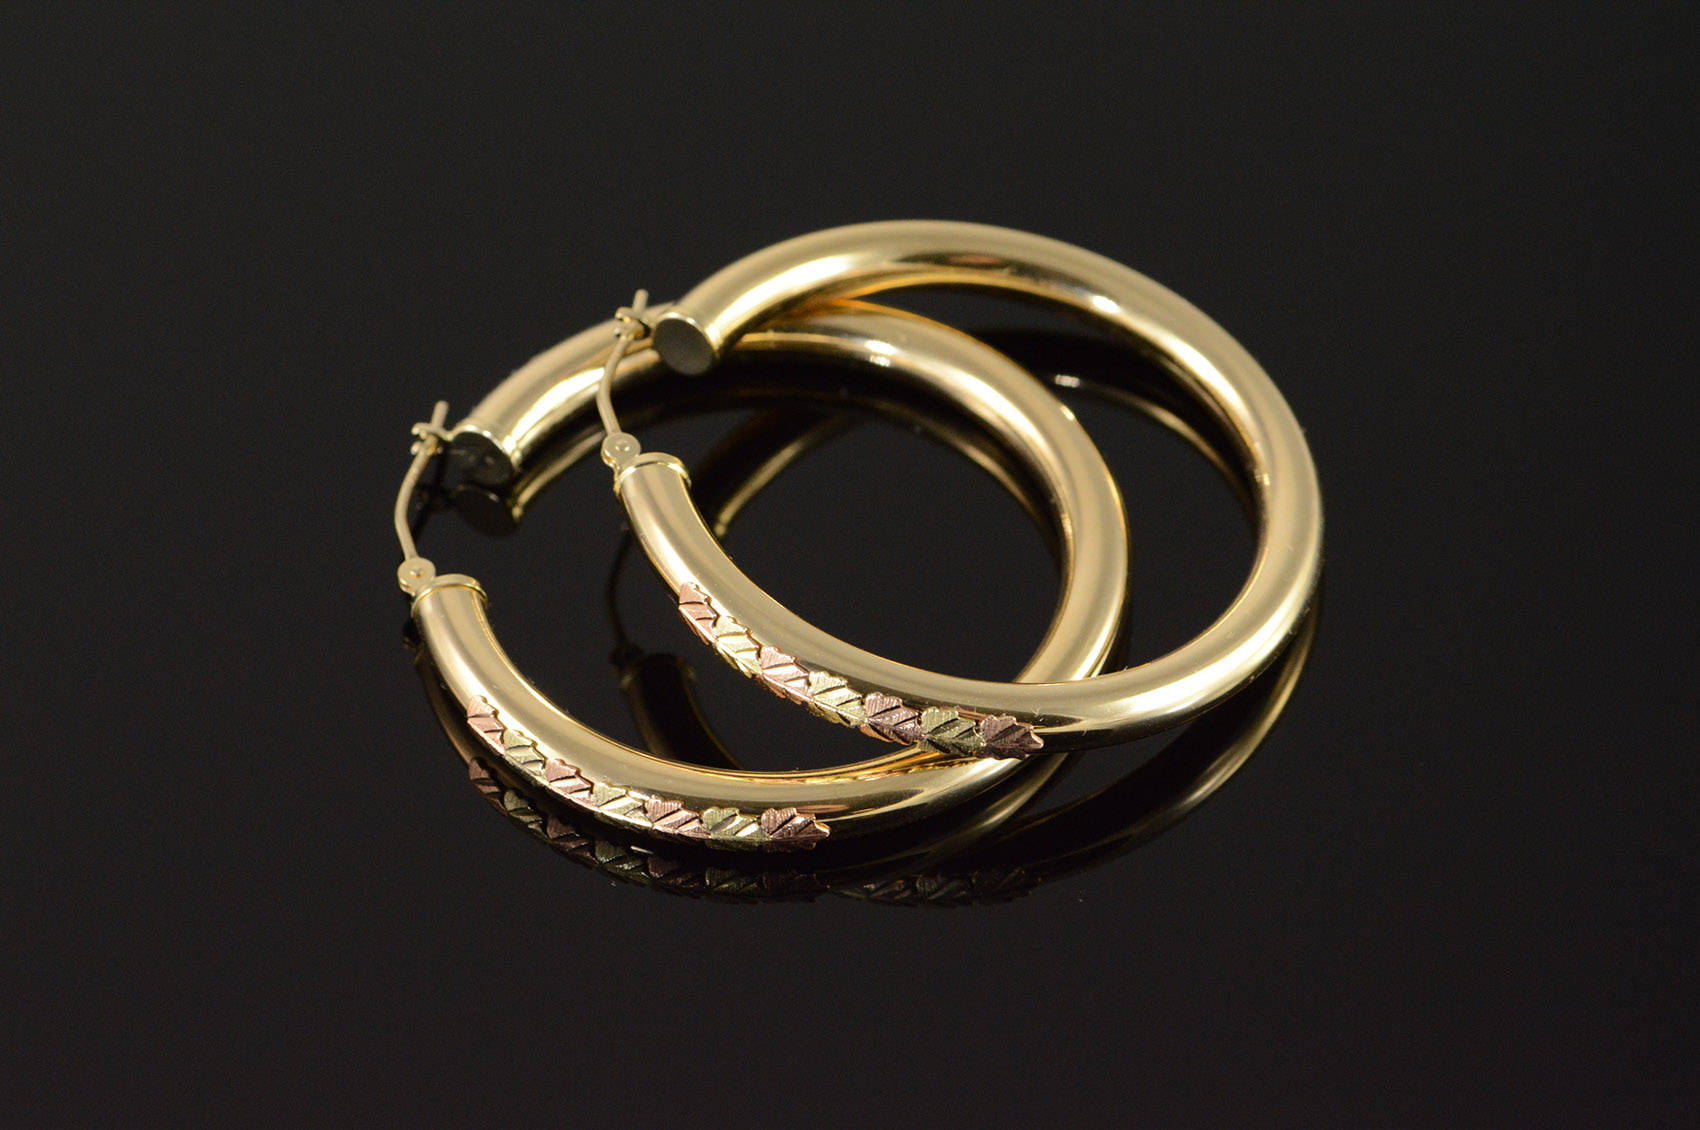 12k 4 1g Black Hills Gold Accented Large Hollow Hoop Yellow Earrings